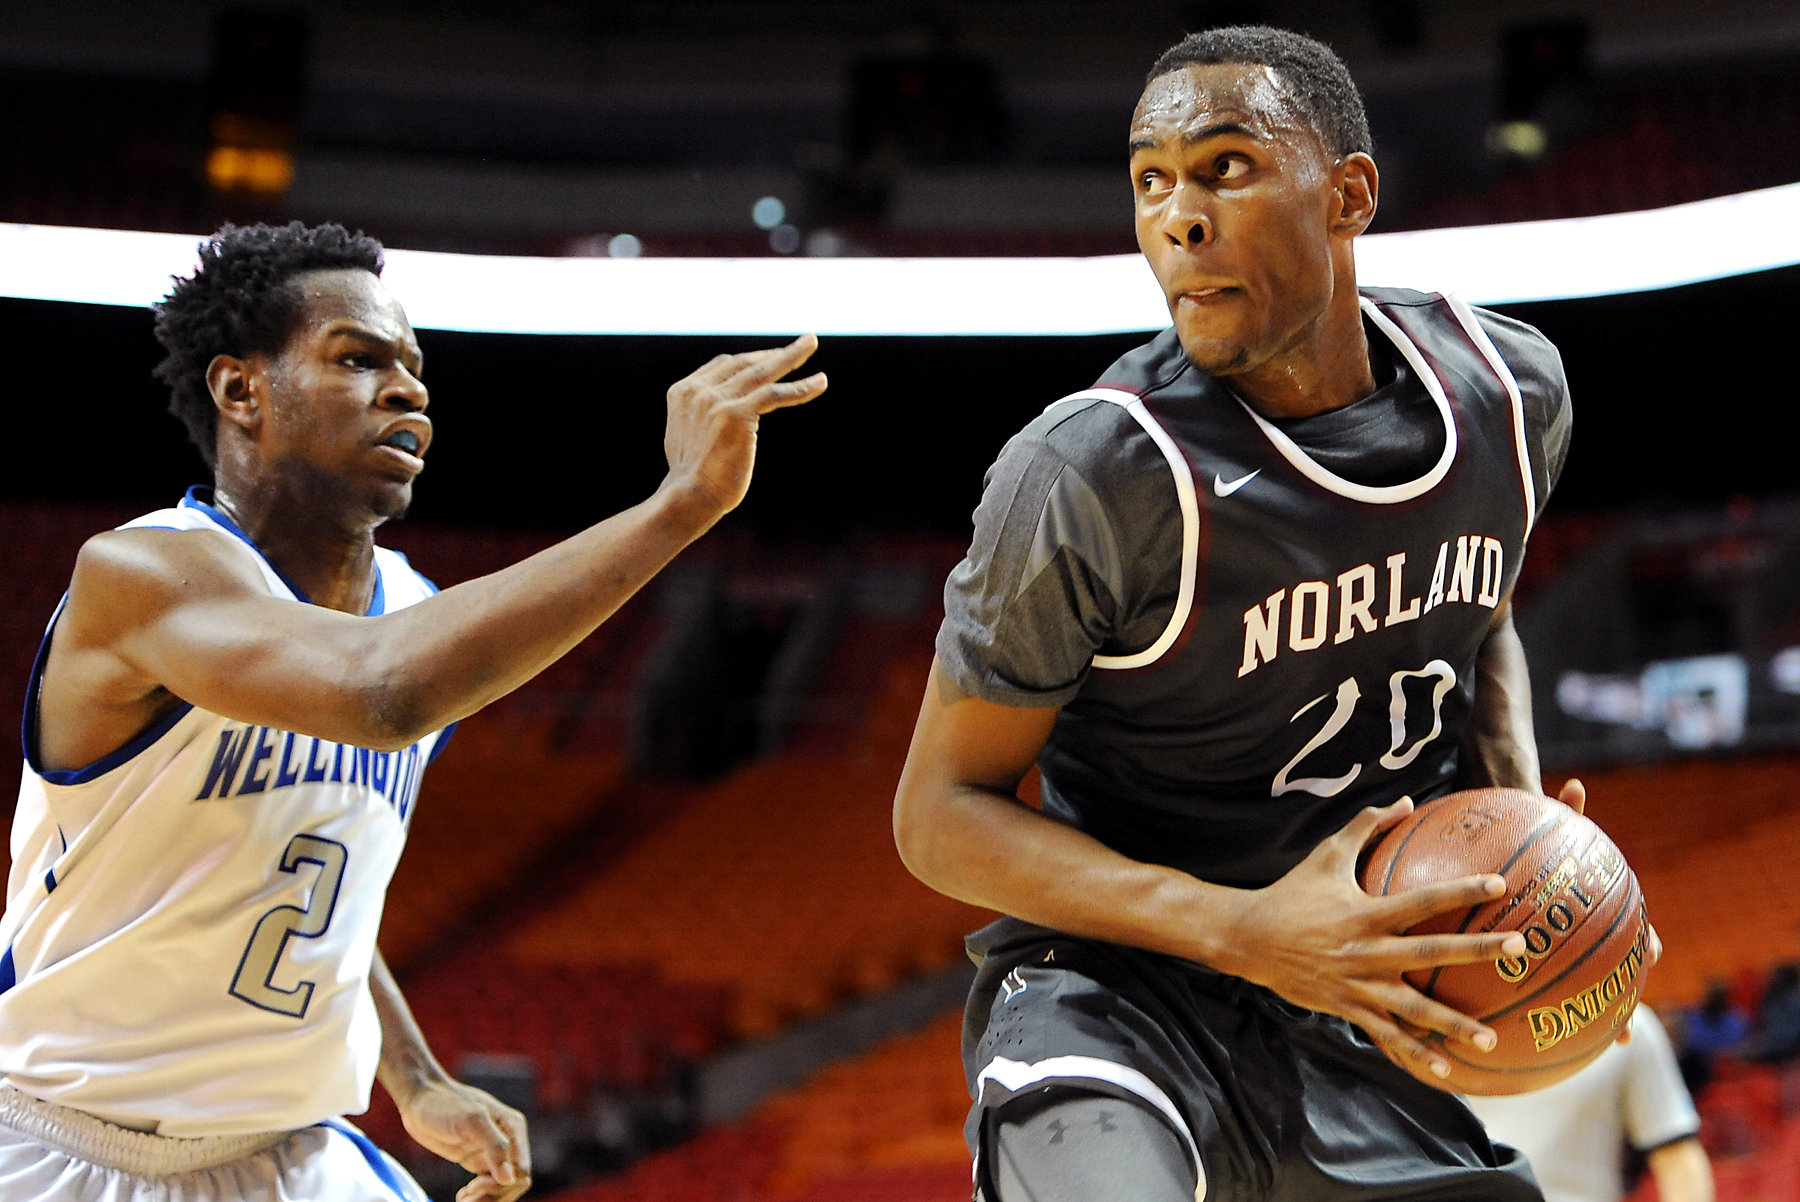 Dewan Huell (20) spins and turns while defended by Wellington's Alex Dieudonne (Photo: Robert Duyos, USA TODAY Sports)